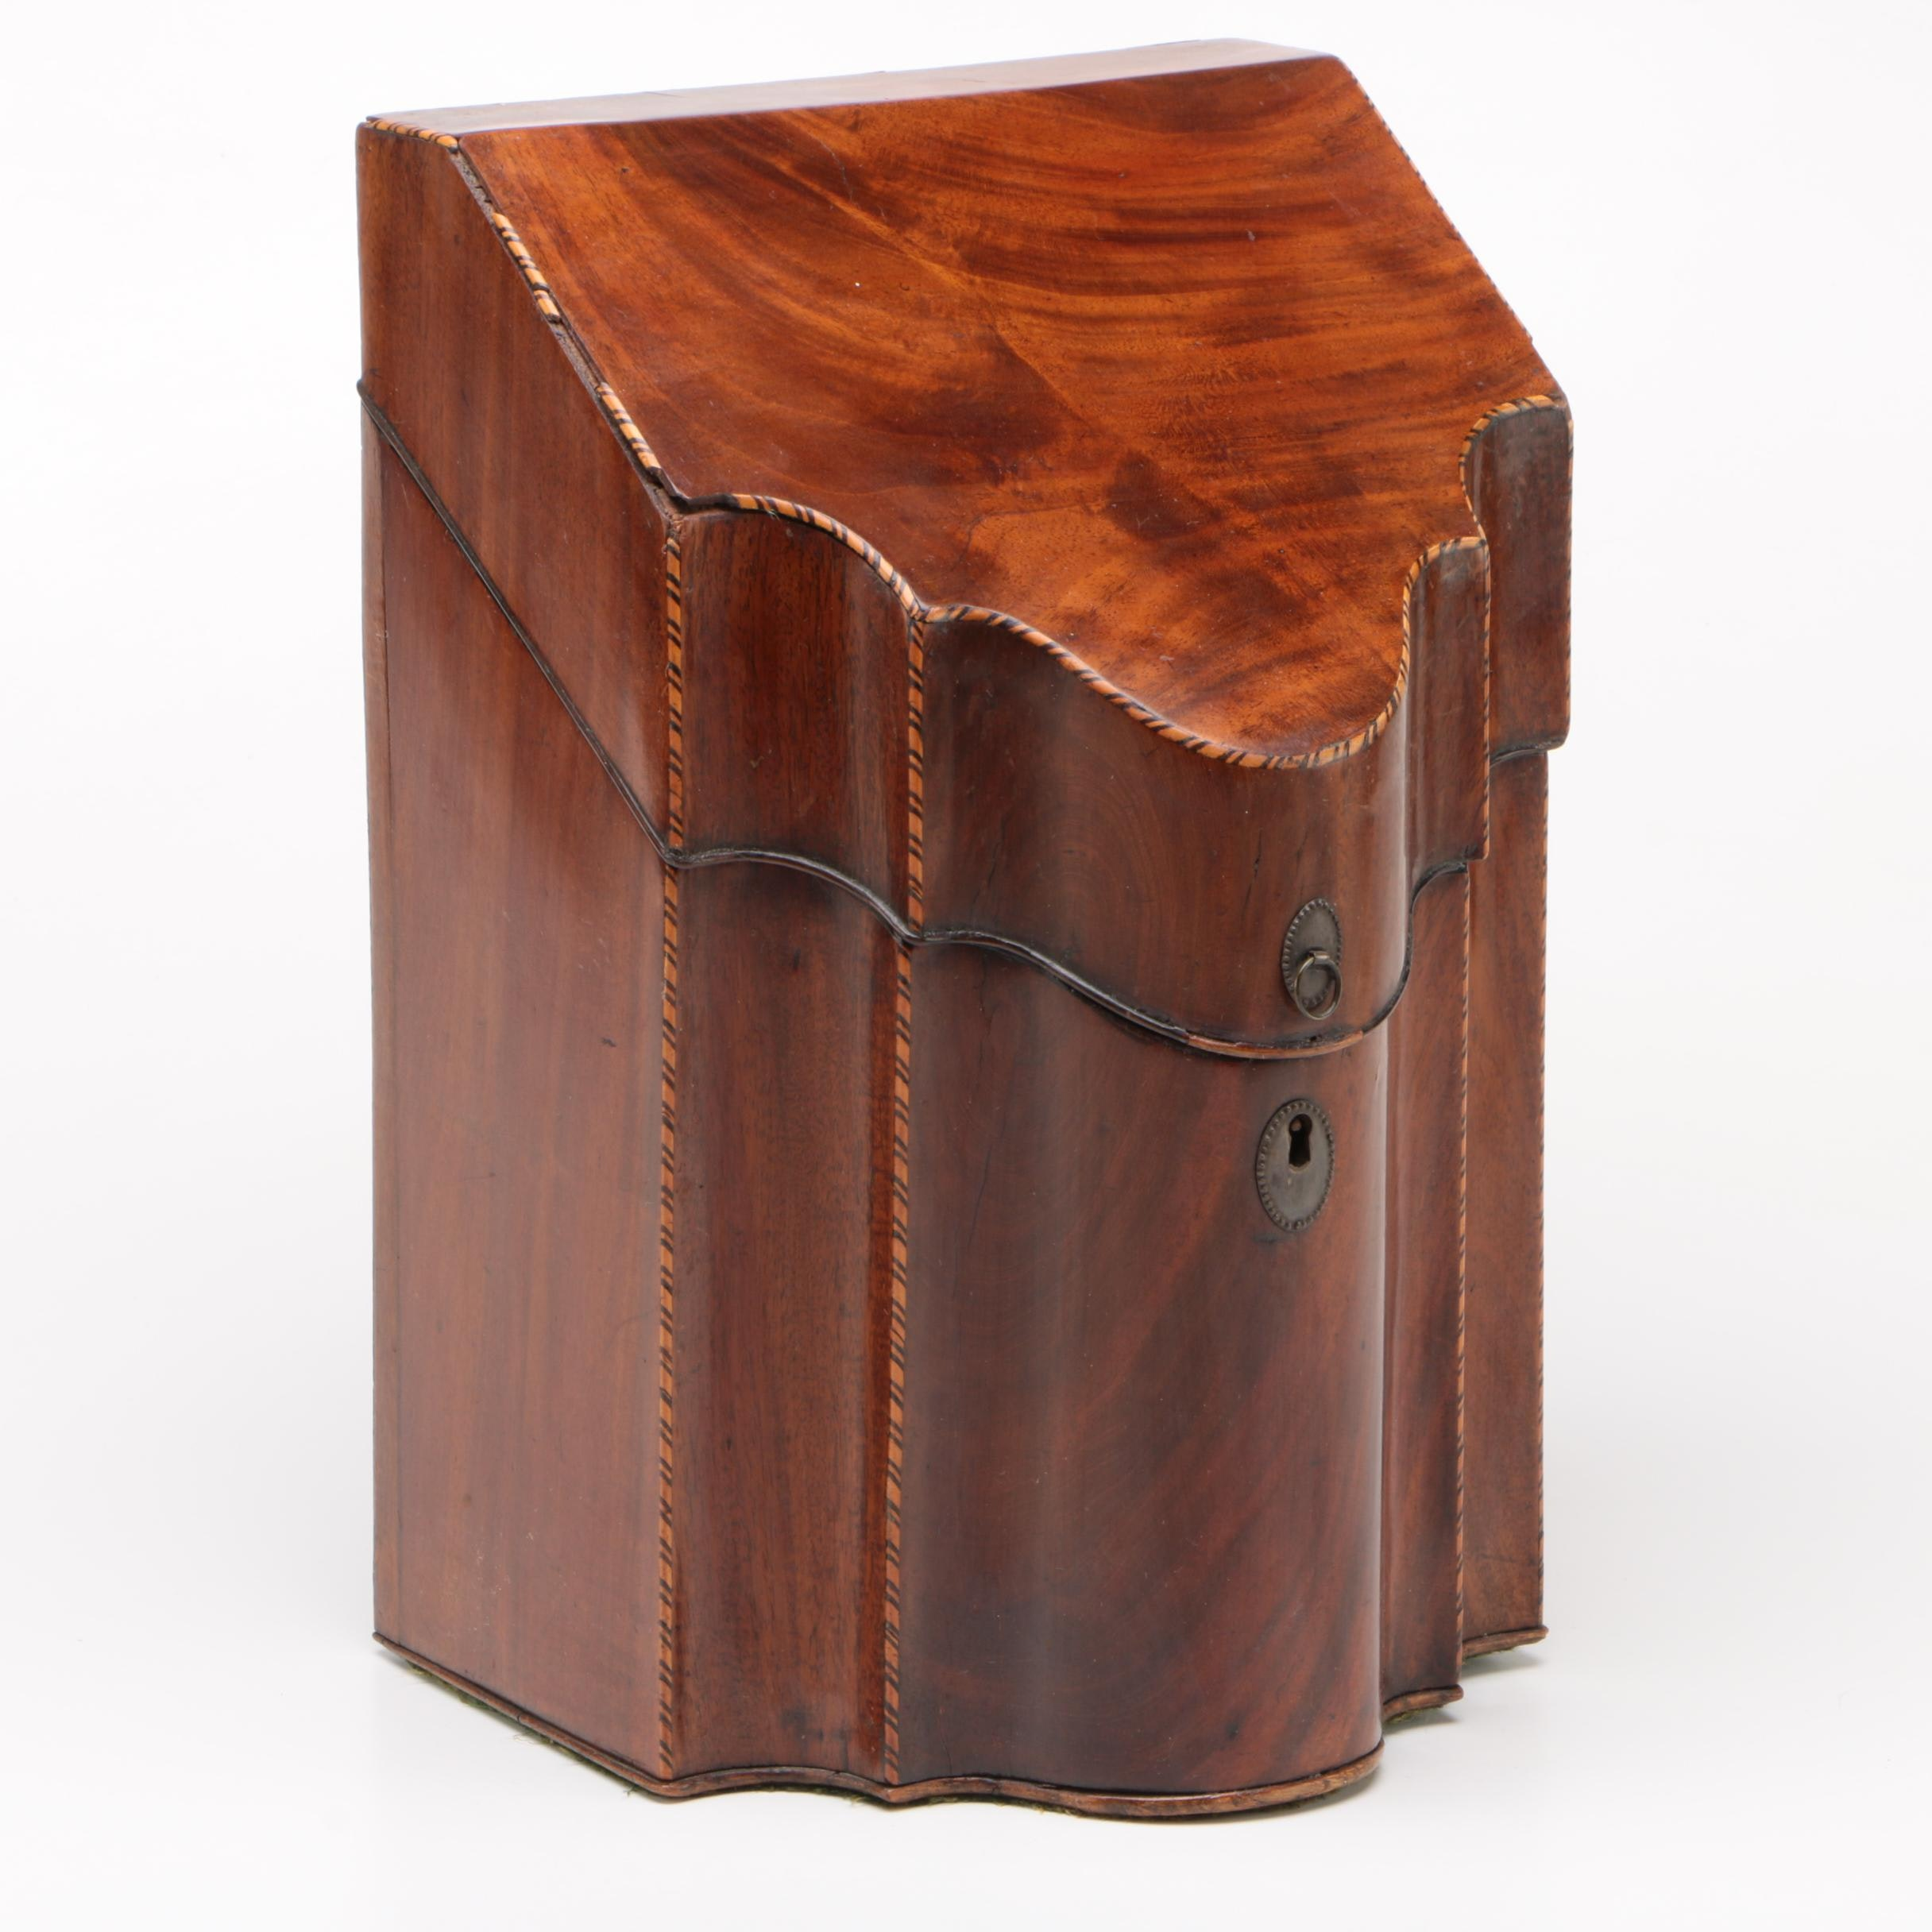 Georgian Style Mahogany and Inlaid Knife Box, Late 19th/ Early 20th Century